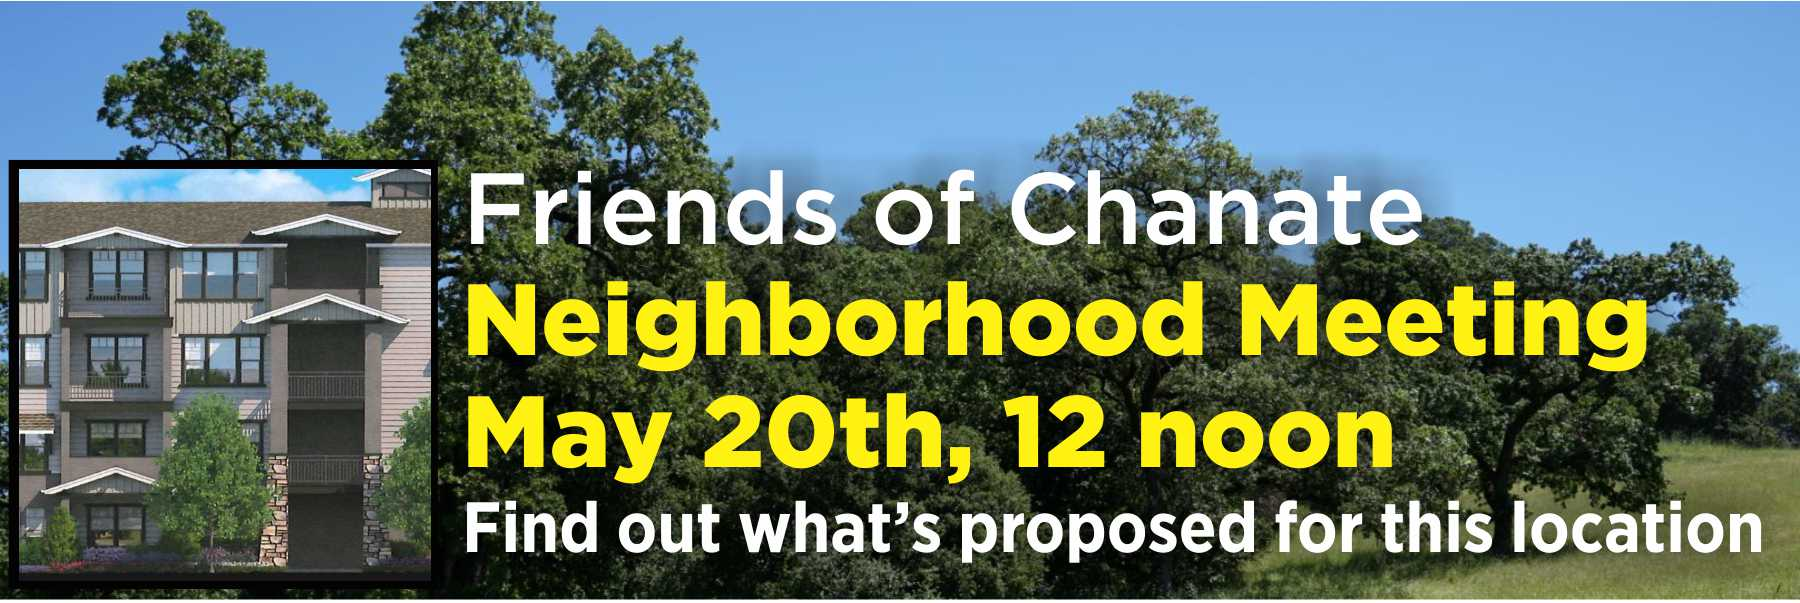 "Don't Miss It! – Neighborhood Meeting, May 20th  Find out what's happening with the old Community Hospital/Sutter Hospital Chanate location at our neighborhood meeting on Sunday, May 20th, from Noon to 2 p.m. at Hidden Valley School. All are welcome!  The process is moving fast (the developer has now filed papers with Santa Rosa!) – you need to know what's proposed now so you can stay informed and influence the final development.   Knowledge is power. If you don't know what's happening, you may not be happy with the result.   · We'll update you on our lawsuit.  · We'll show you large pictures of the 867 high density apartments the applicant is proposing for the site.  · We'll let you know the process the proposed project will follow.  · We'll let you know how to make sure that you stay informed.  · We'll answer your questions.   Don't miss this chance to find out what's really going on!   We are not opposed to development at this location, but we are very worried about what kind of development will happen, and how all of us will be able to evacuate in the event of another disaster.  We are fighting hard to win our lawsuit against the County, which would require this process to start over, but we all need to stay informed of everything else that is going on, particularly now that the developer has filed papers with Santa Rosa to start the project.  To find out as much as we know, attend the Friends of Chanate Neighborhood Meeting on Sunday, May 20th from Noon to 2 p.m. at Hidden Valley School, 3435 Bonita Vista Dr., Santa Rosa – right off of Chanate Road.  RSVPs to  FriendsOfChanate@sonic.net  appreciated.  Your continued support is critical to our success.   Please make a tax-deductible contribution today to help us succeed!     We all deserve a County Government that is working for us, and is not giving valuable property away far too cheaply.   Please visit  www.FriendsOfChanate.org  to make a secure, tax deductible deposit, or donate securely on our Facebook page. You can also mail a tax deductible check to Friends of Chanate by making the check payable to ""Friends of Chanate/ISI"" and mailing it to Friends of Chanate, P.O. Box 1284, Santa Rosa, CA 95402.  Thank you, again, for your continued support!"